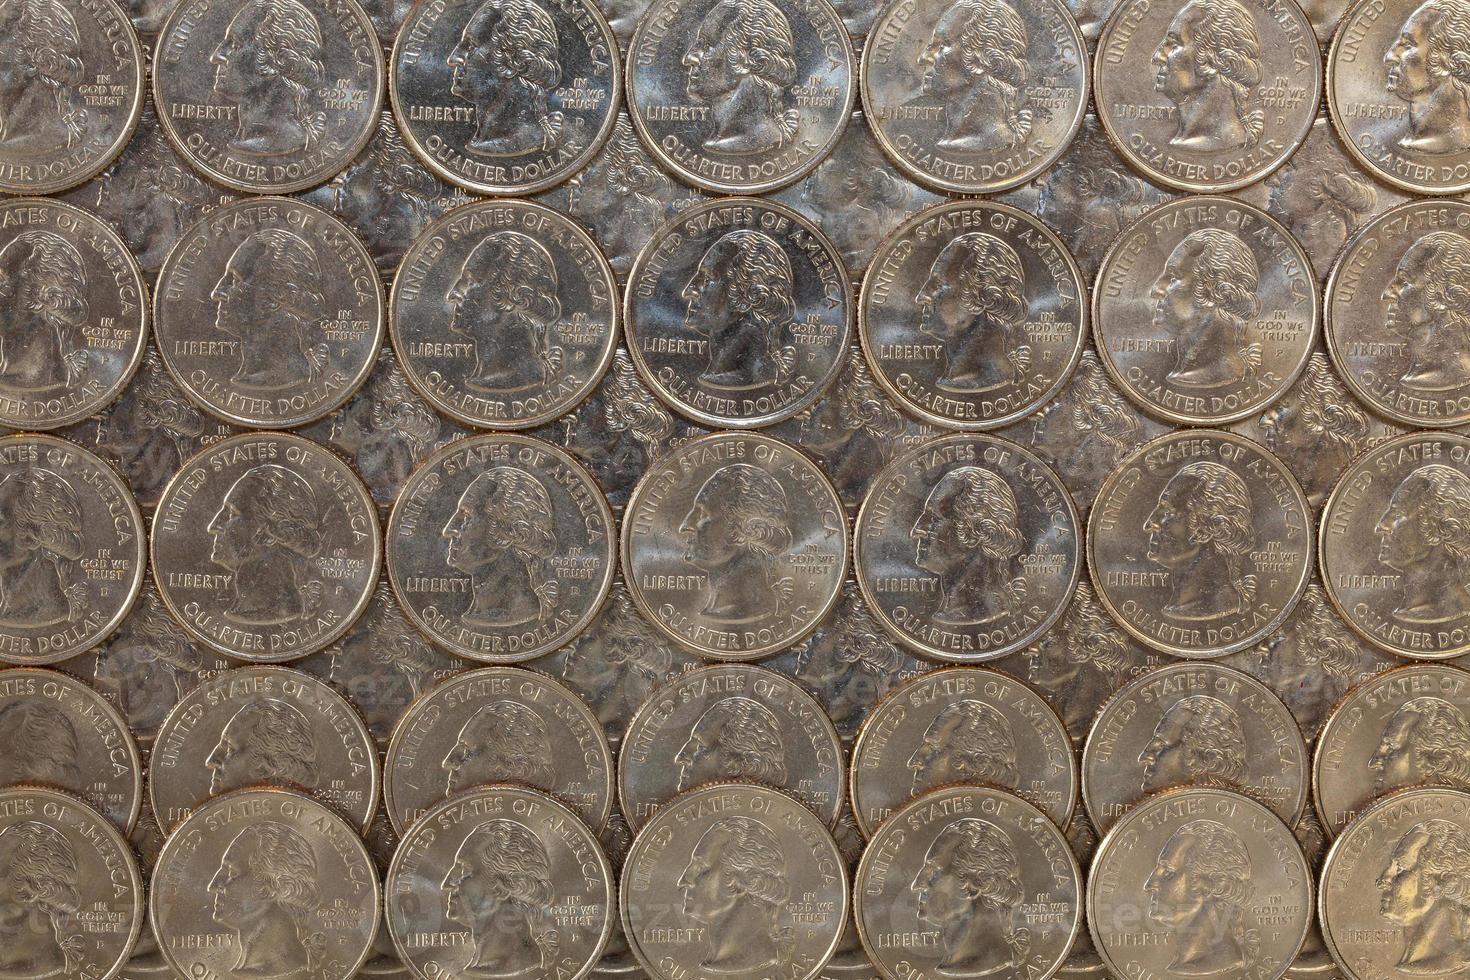 The same US coins on a glass table photo